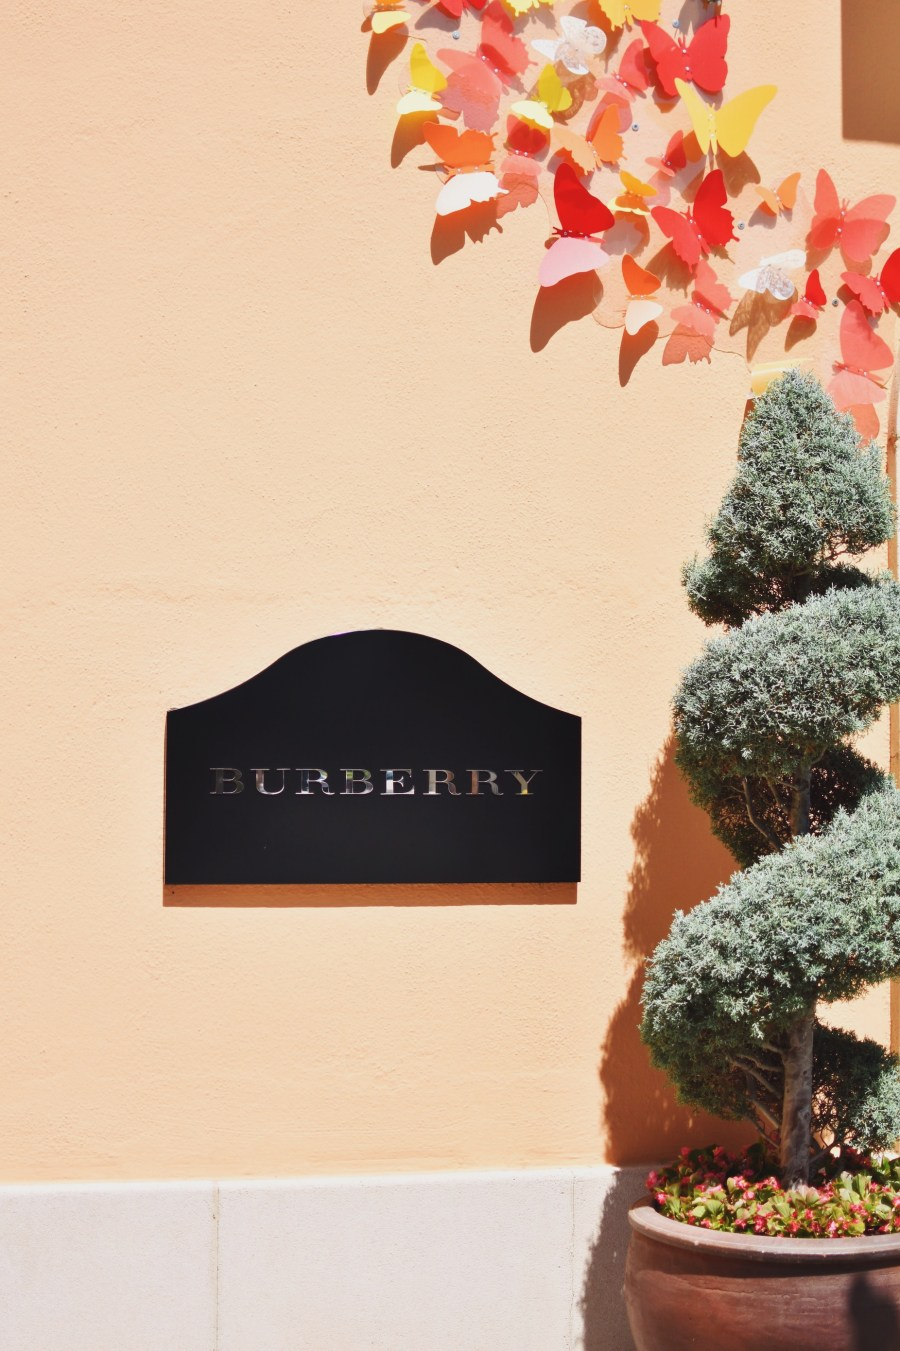 Burberry Outlet